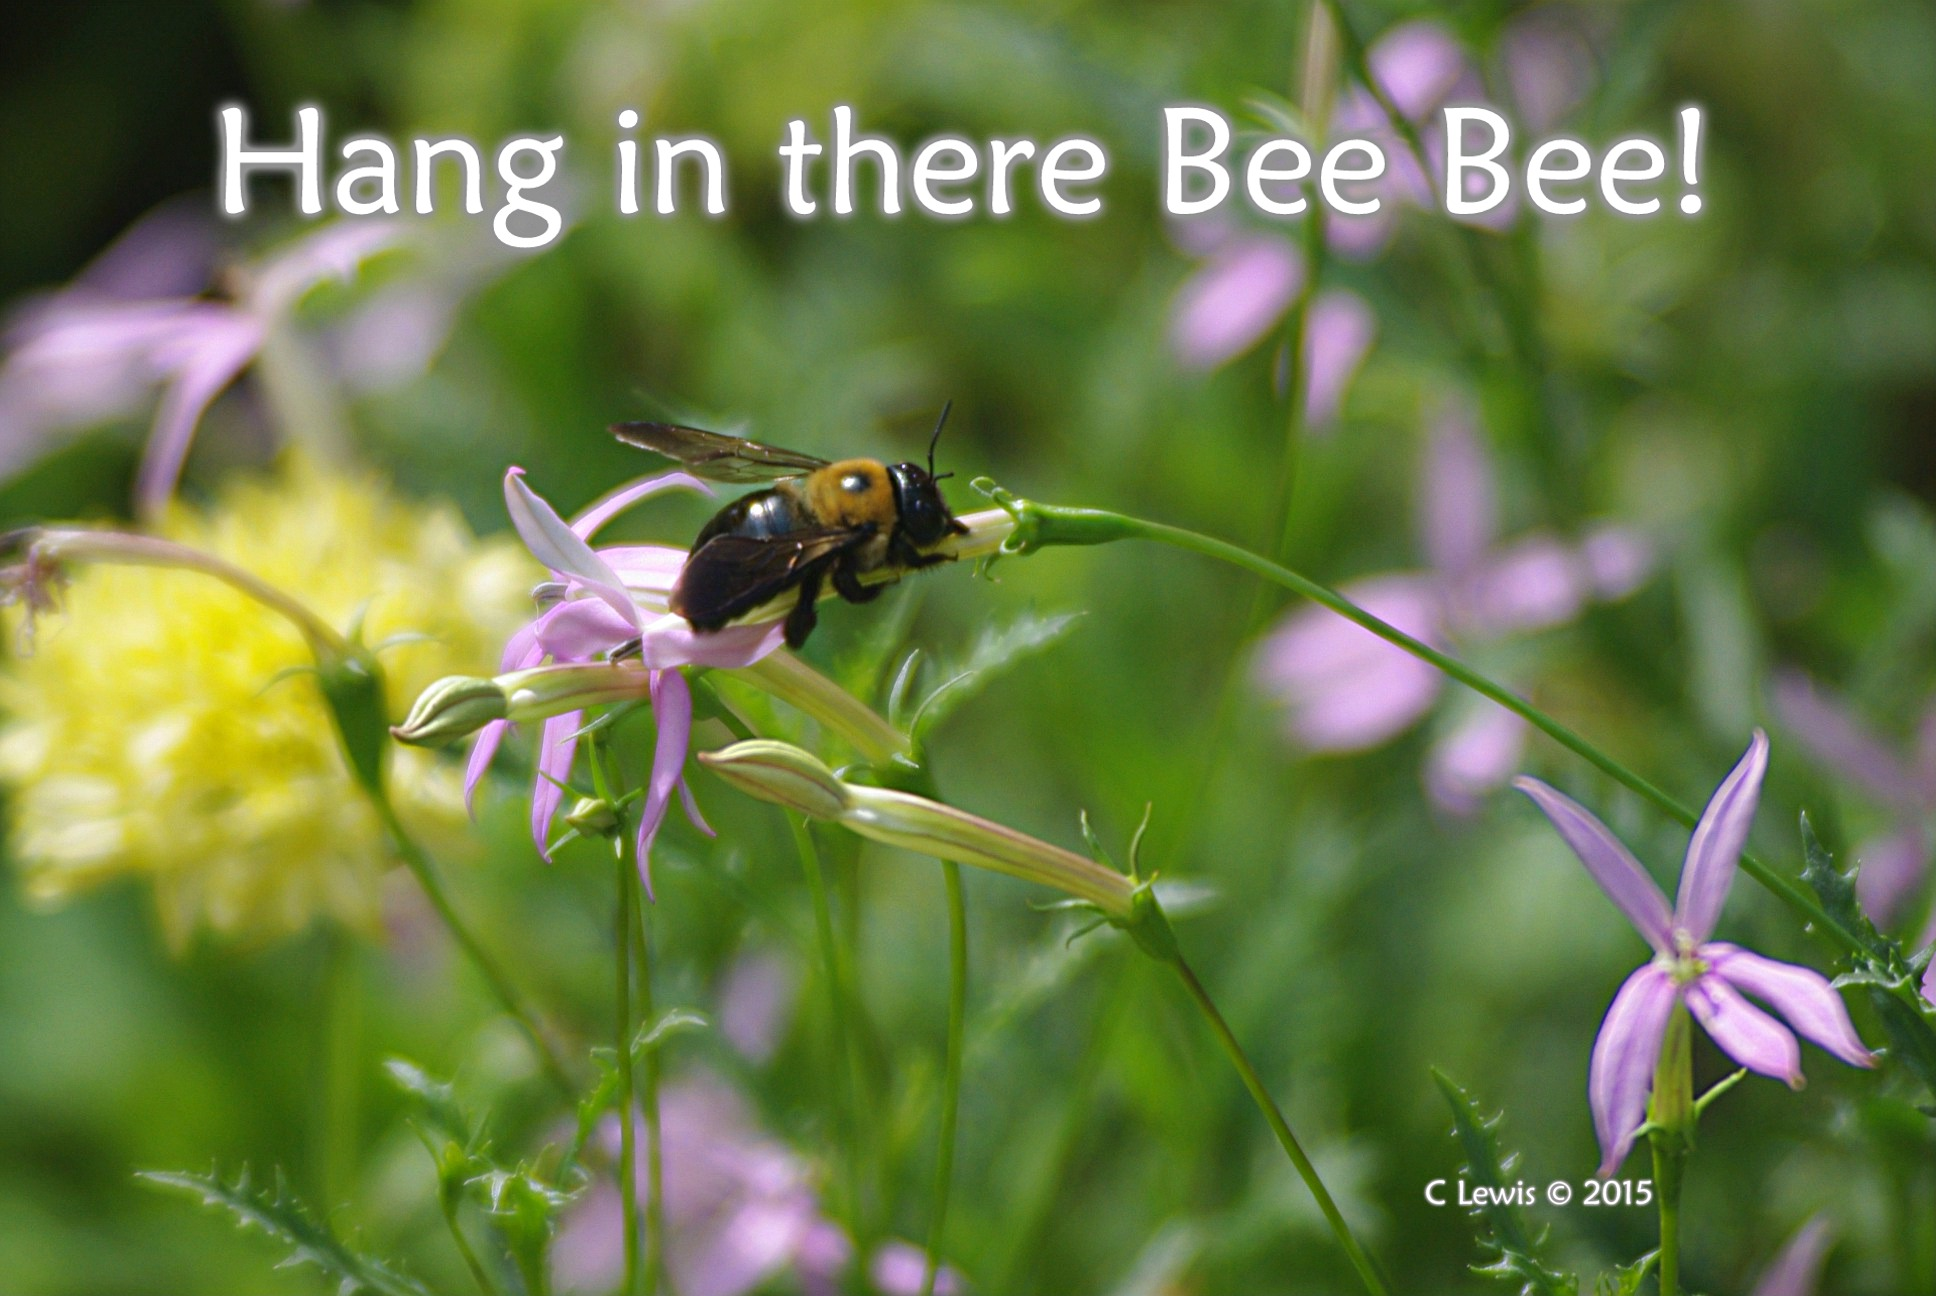 BeeHanginThere